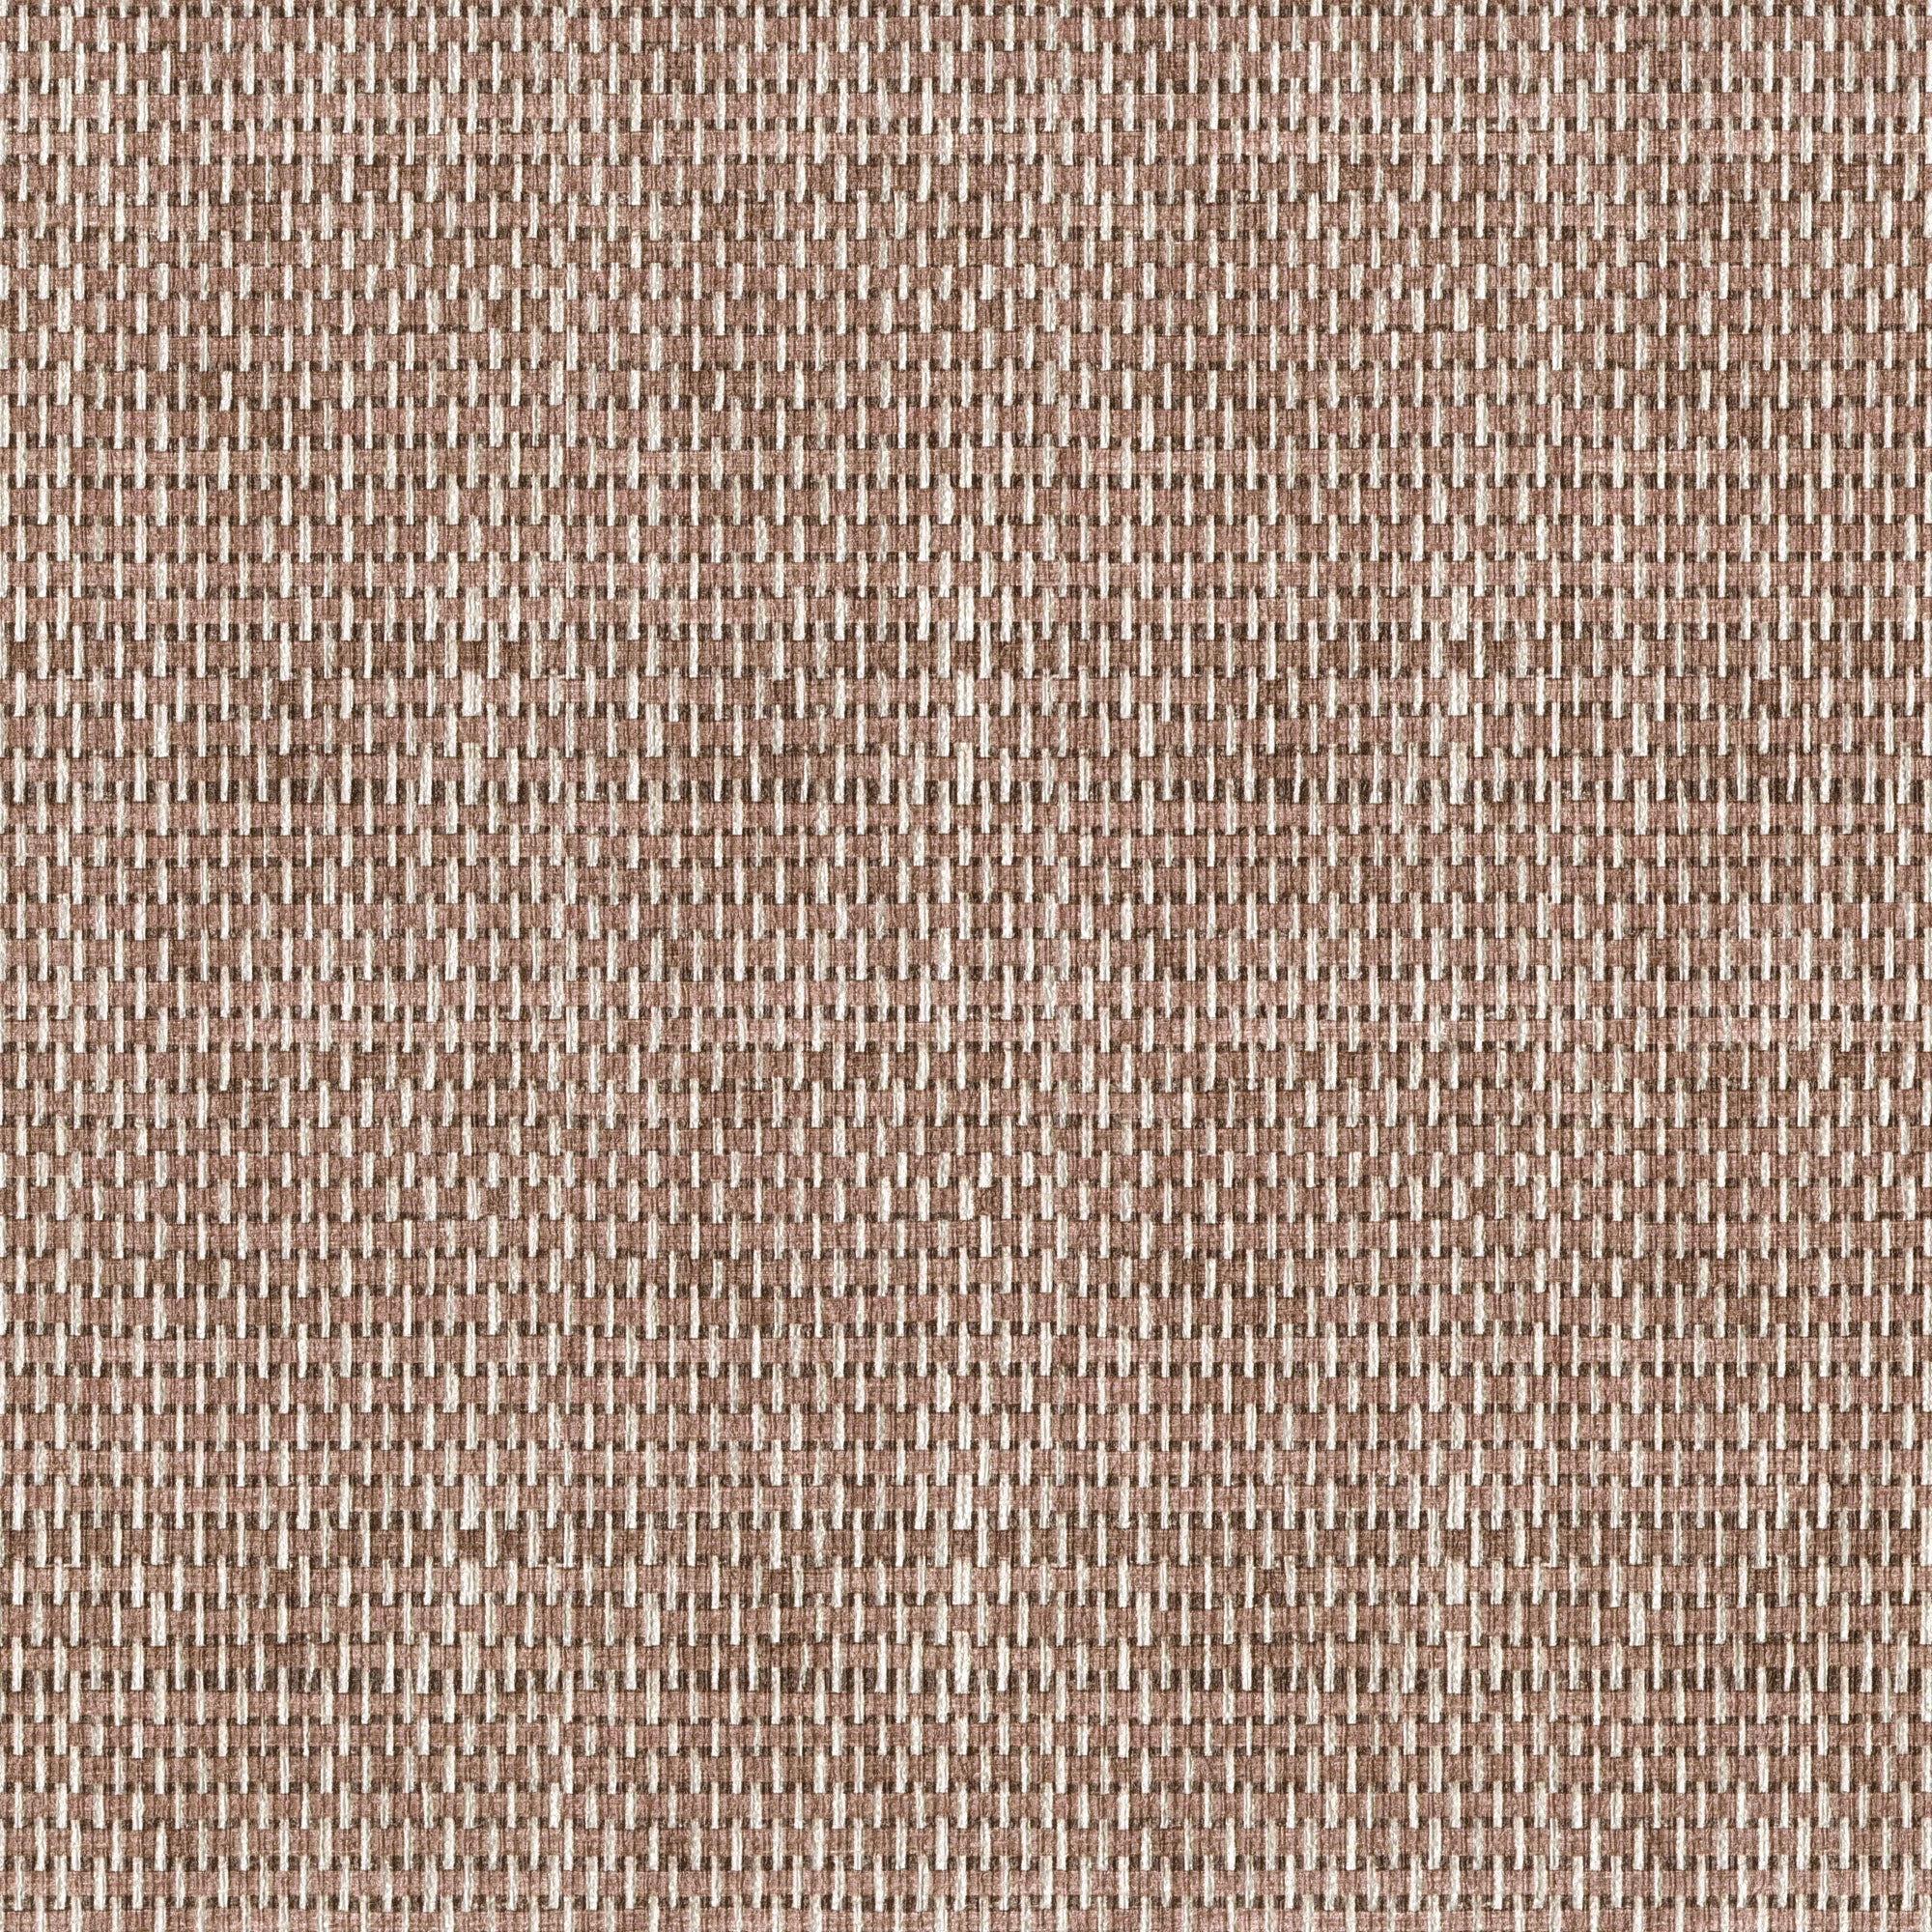 Textured Vinyl In Maroon And Brown, 8166 28